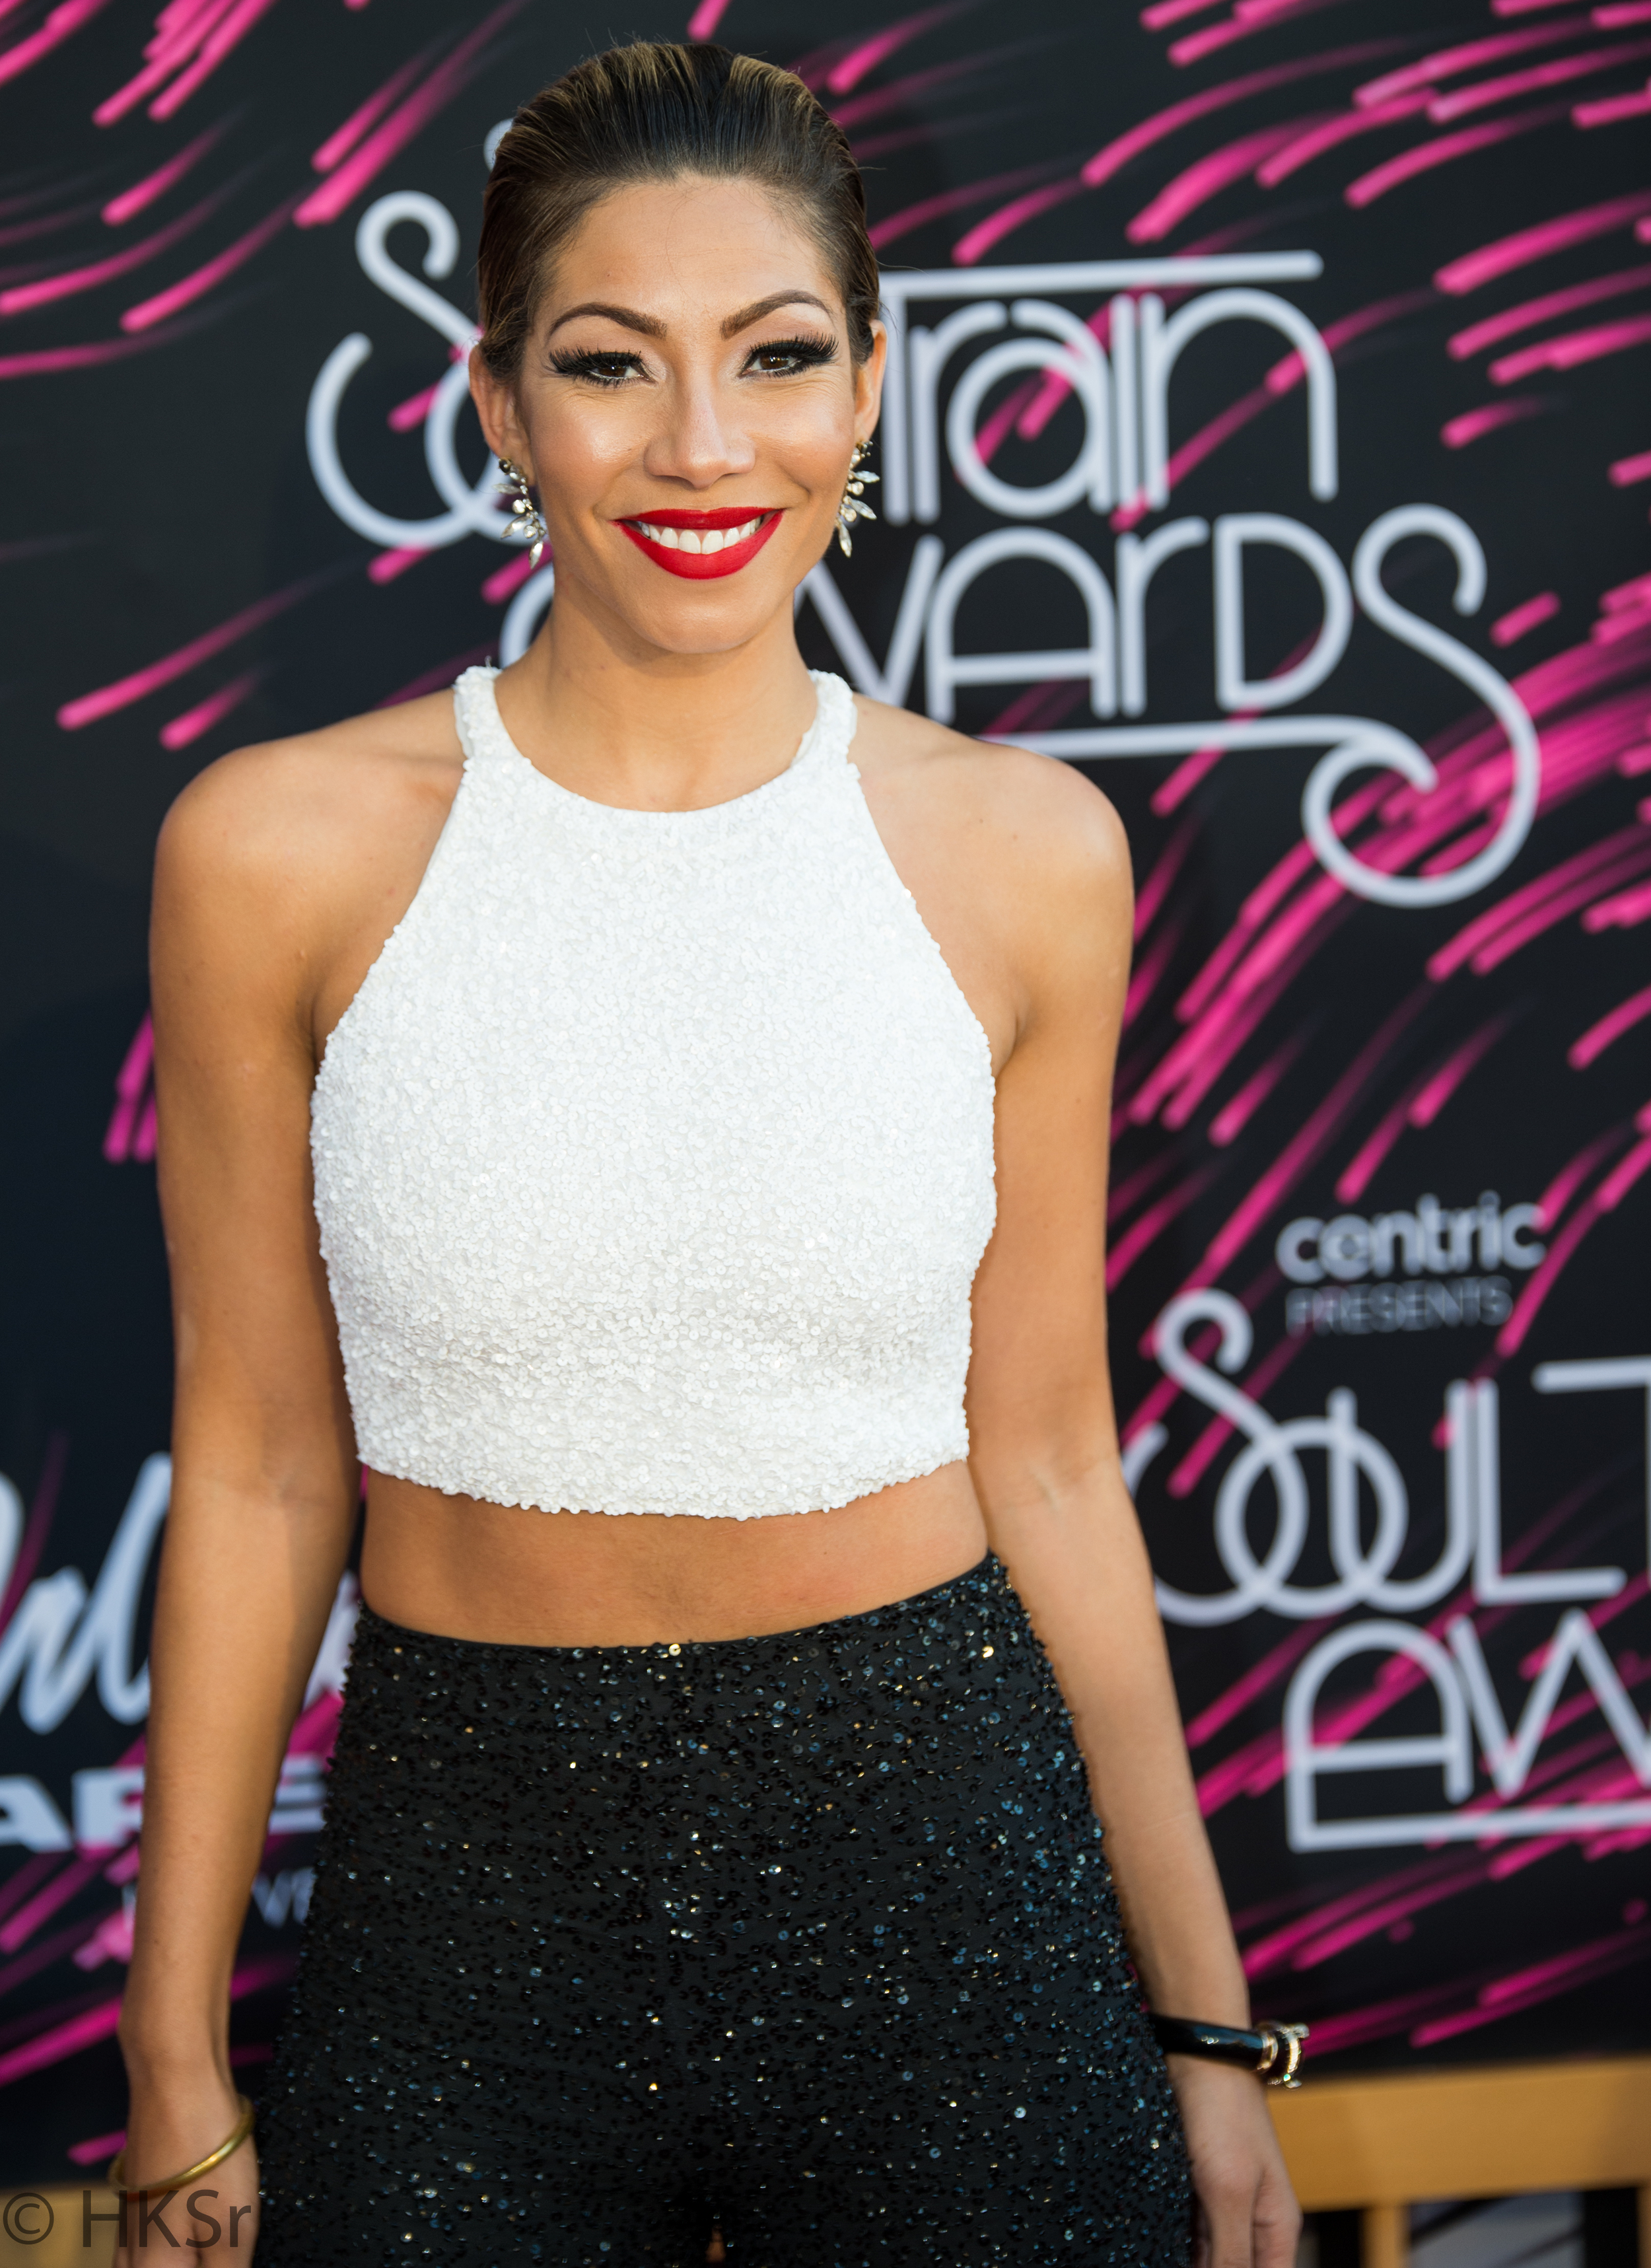 Bridget Kelly looked amazing on the red carpet at the Soul Train Awards